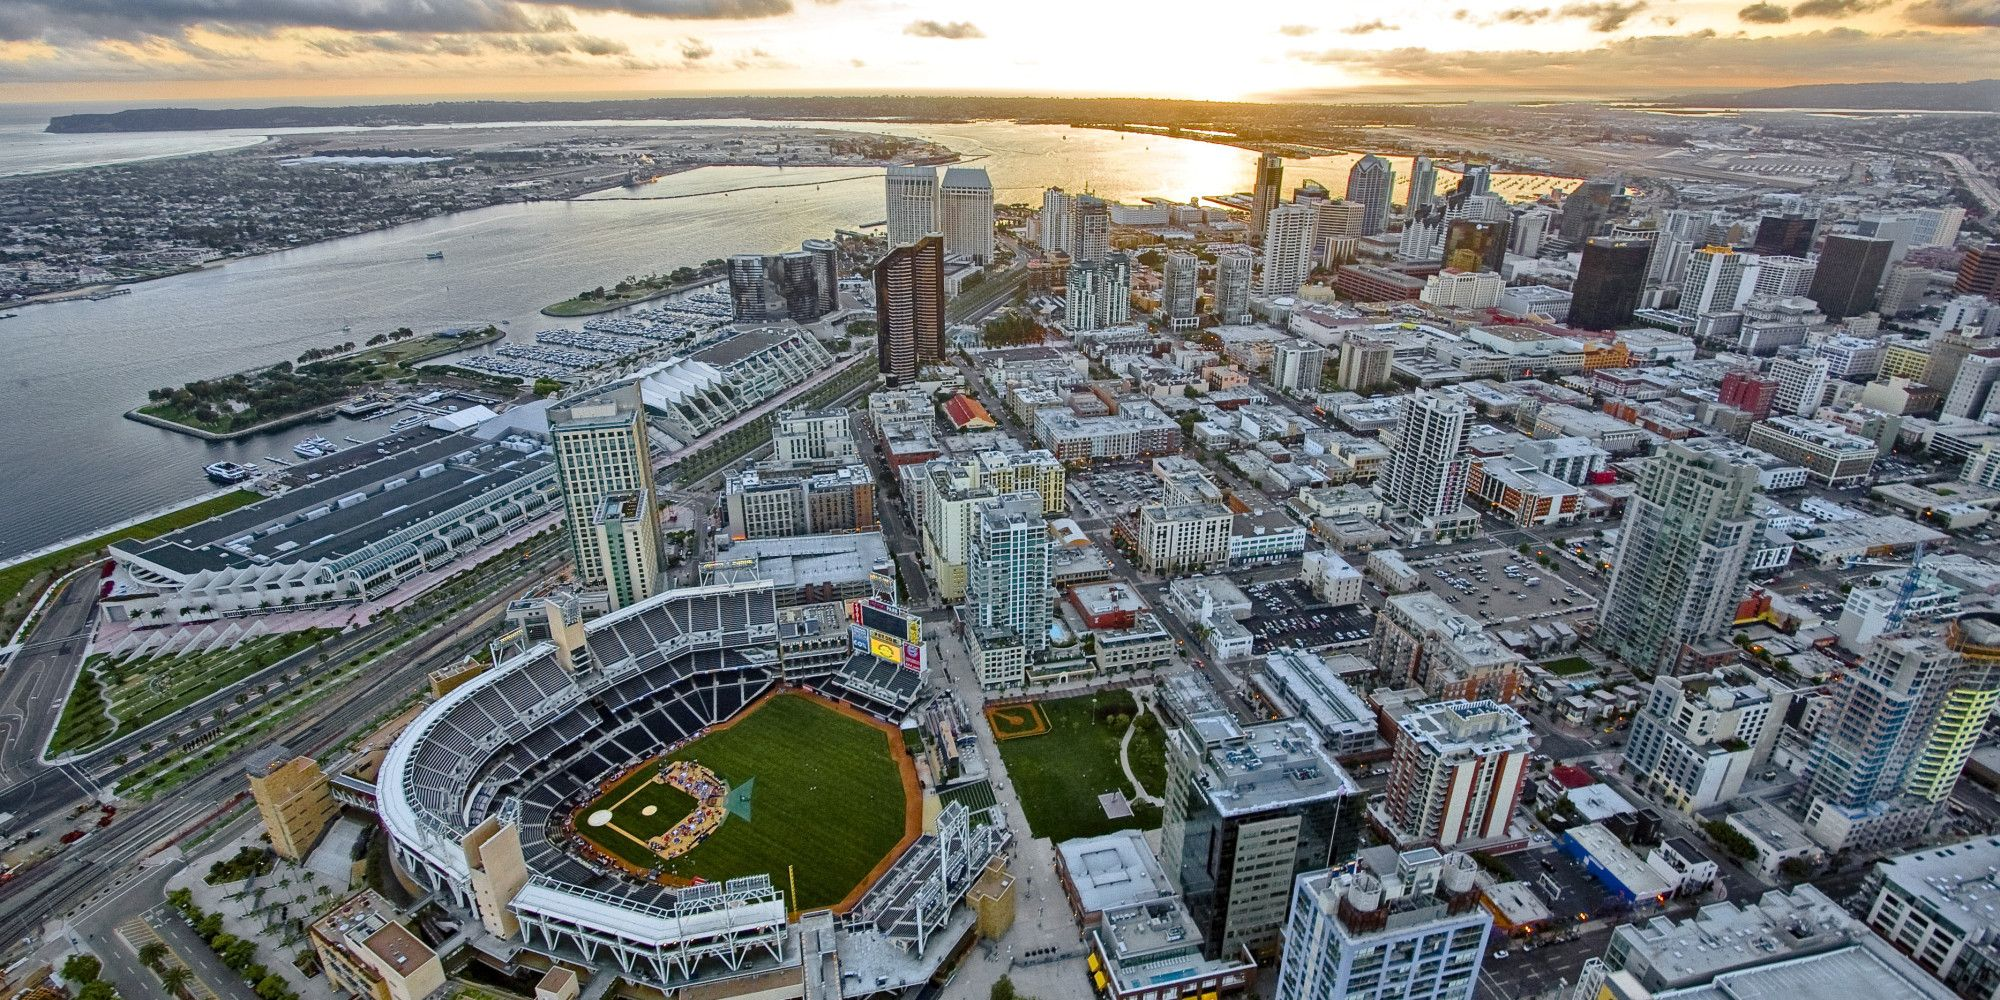 Downtown San Diego with its new Petco Park baseball ...